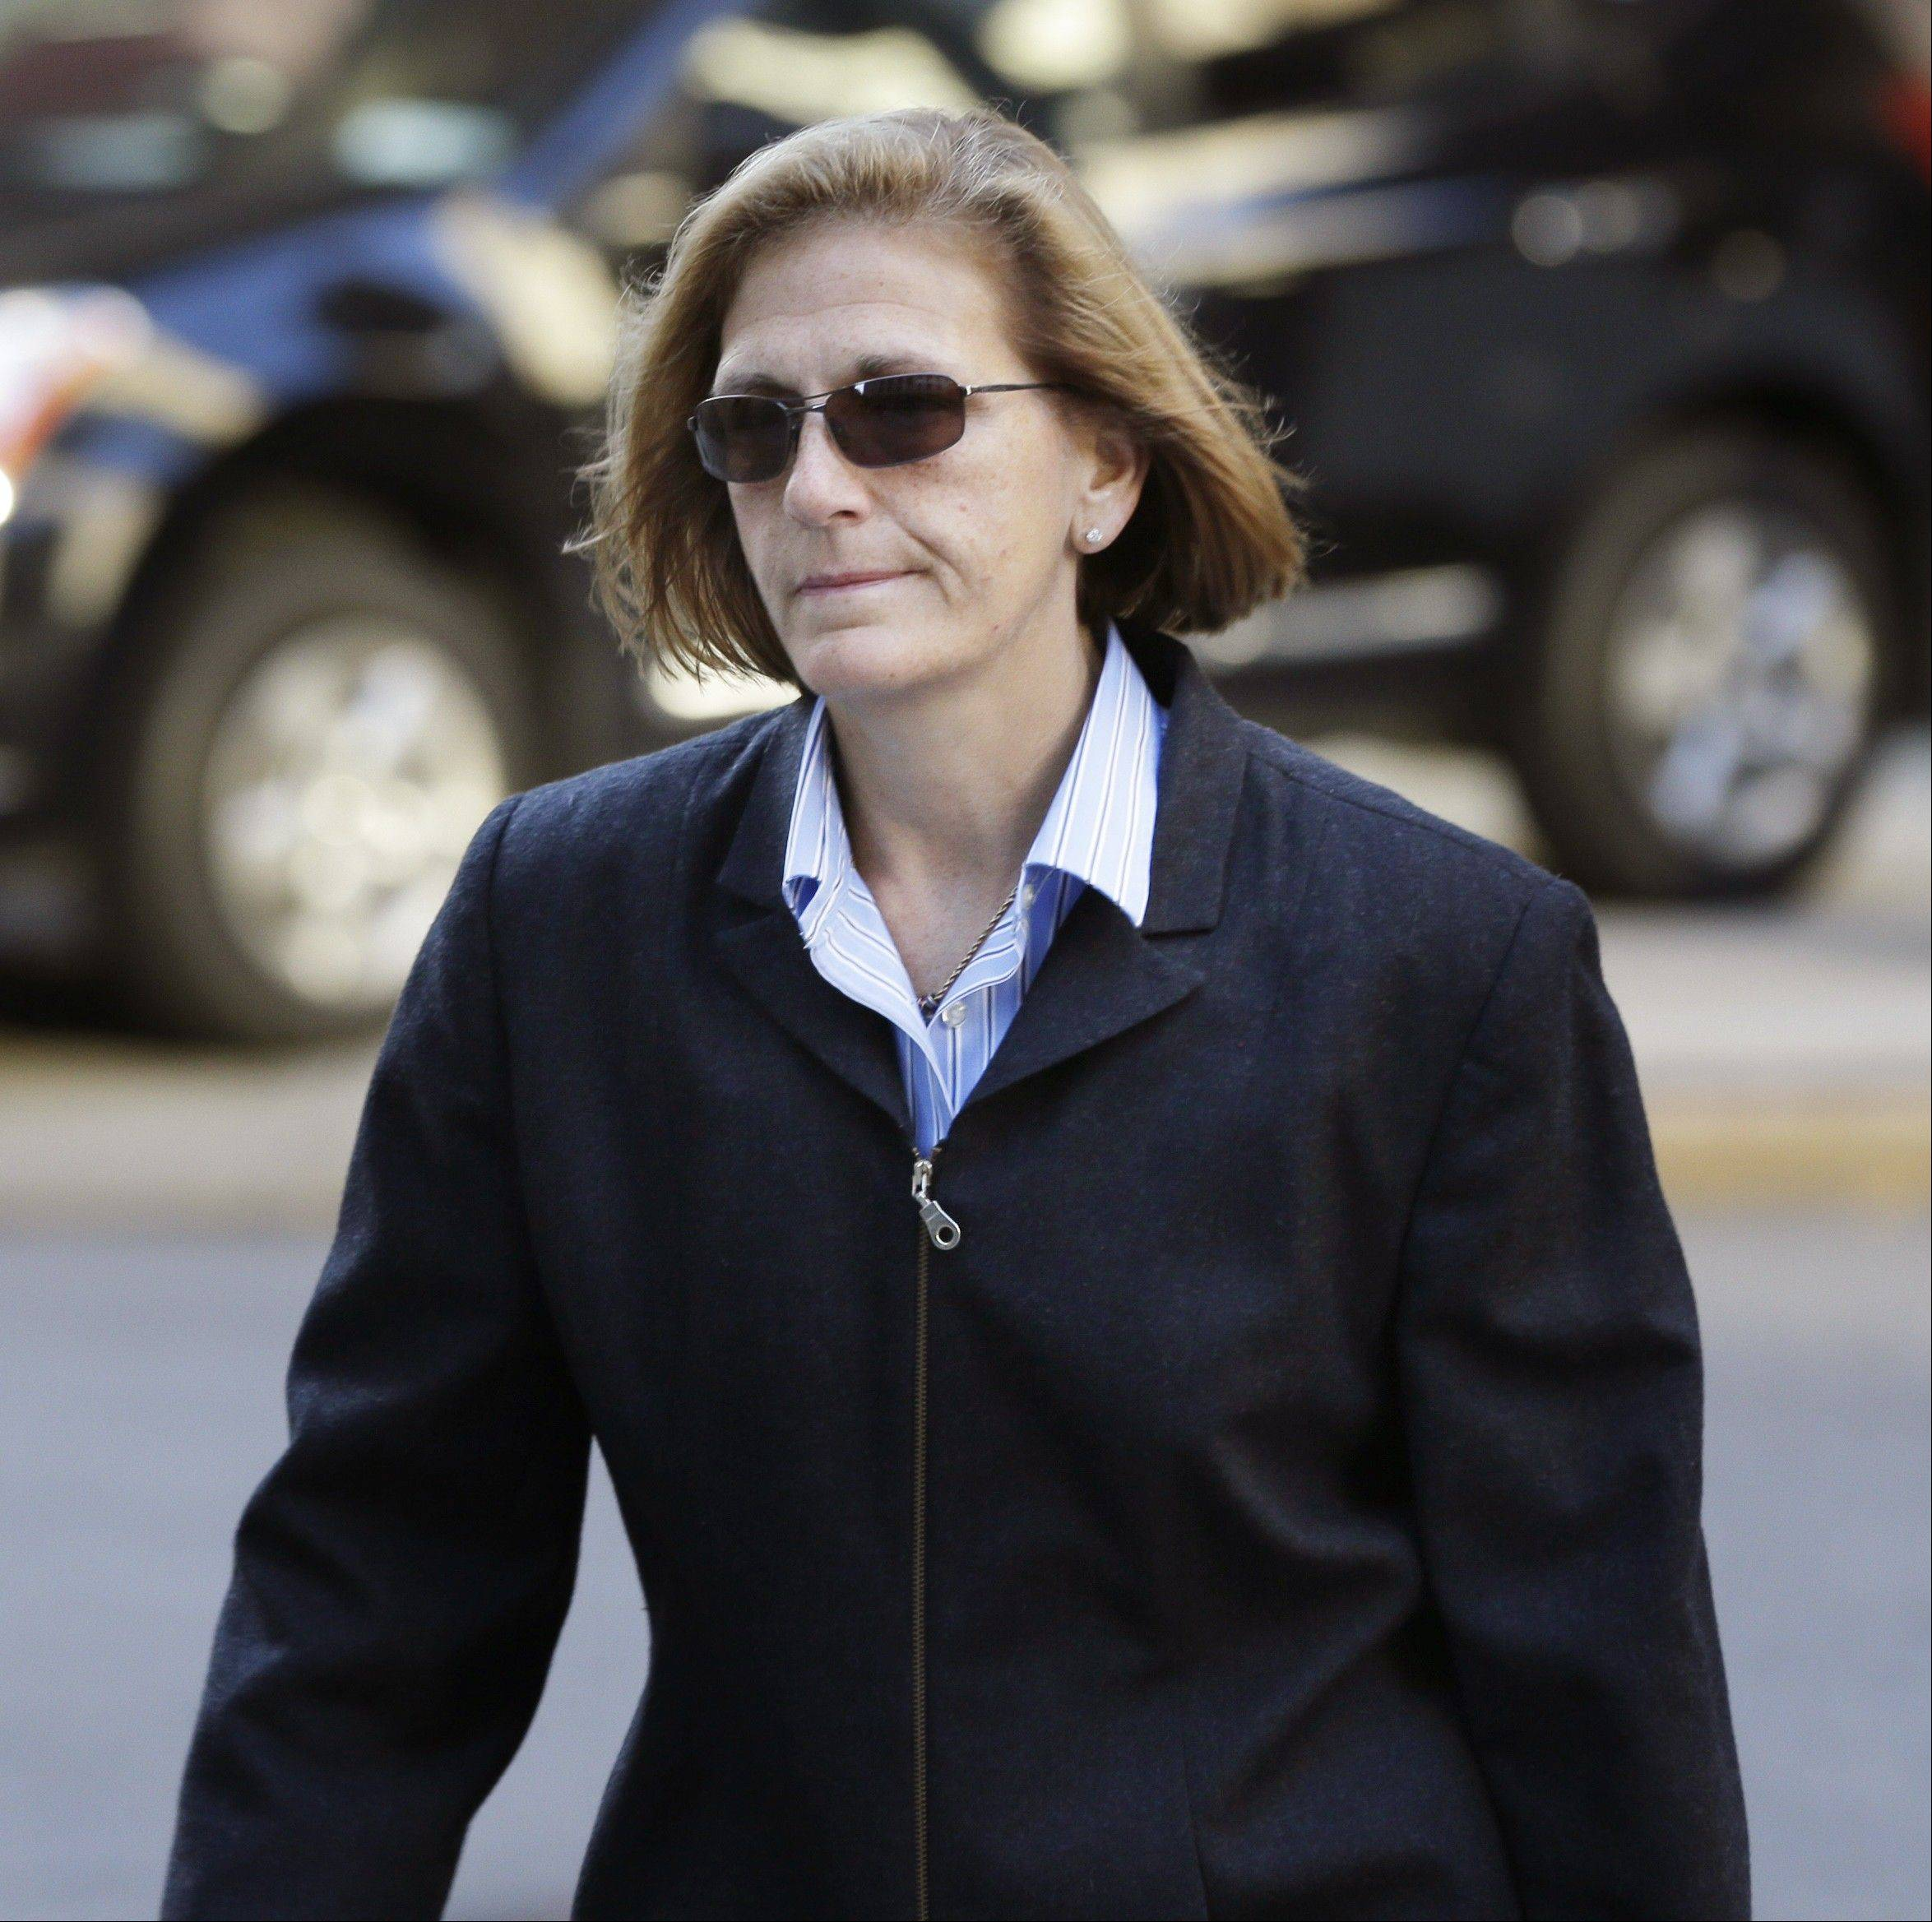 WisconsinJoAnn Crupi, right, arrives at federal court in New York, Tuesday, Oct. 8, 2013. Prosecutors say fictitious trades and phantom accounts were created with help from Crupi, an account manager. (